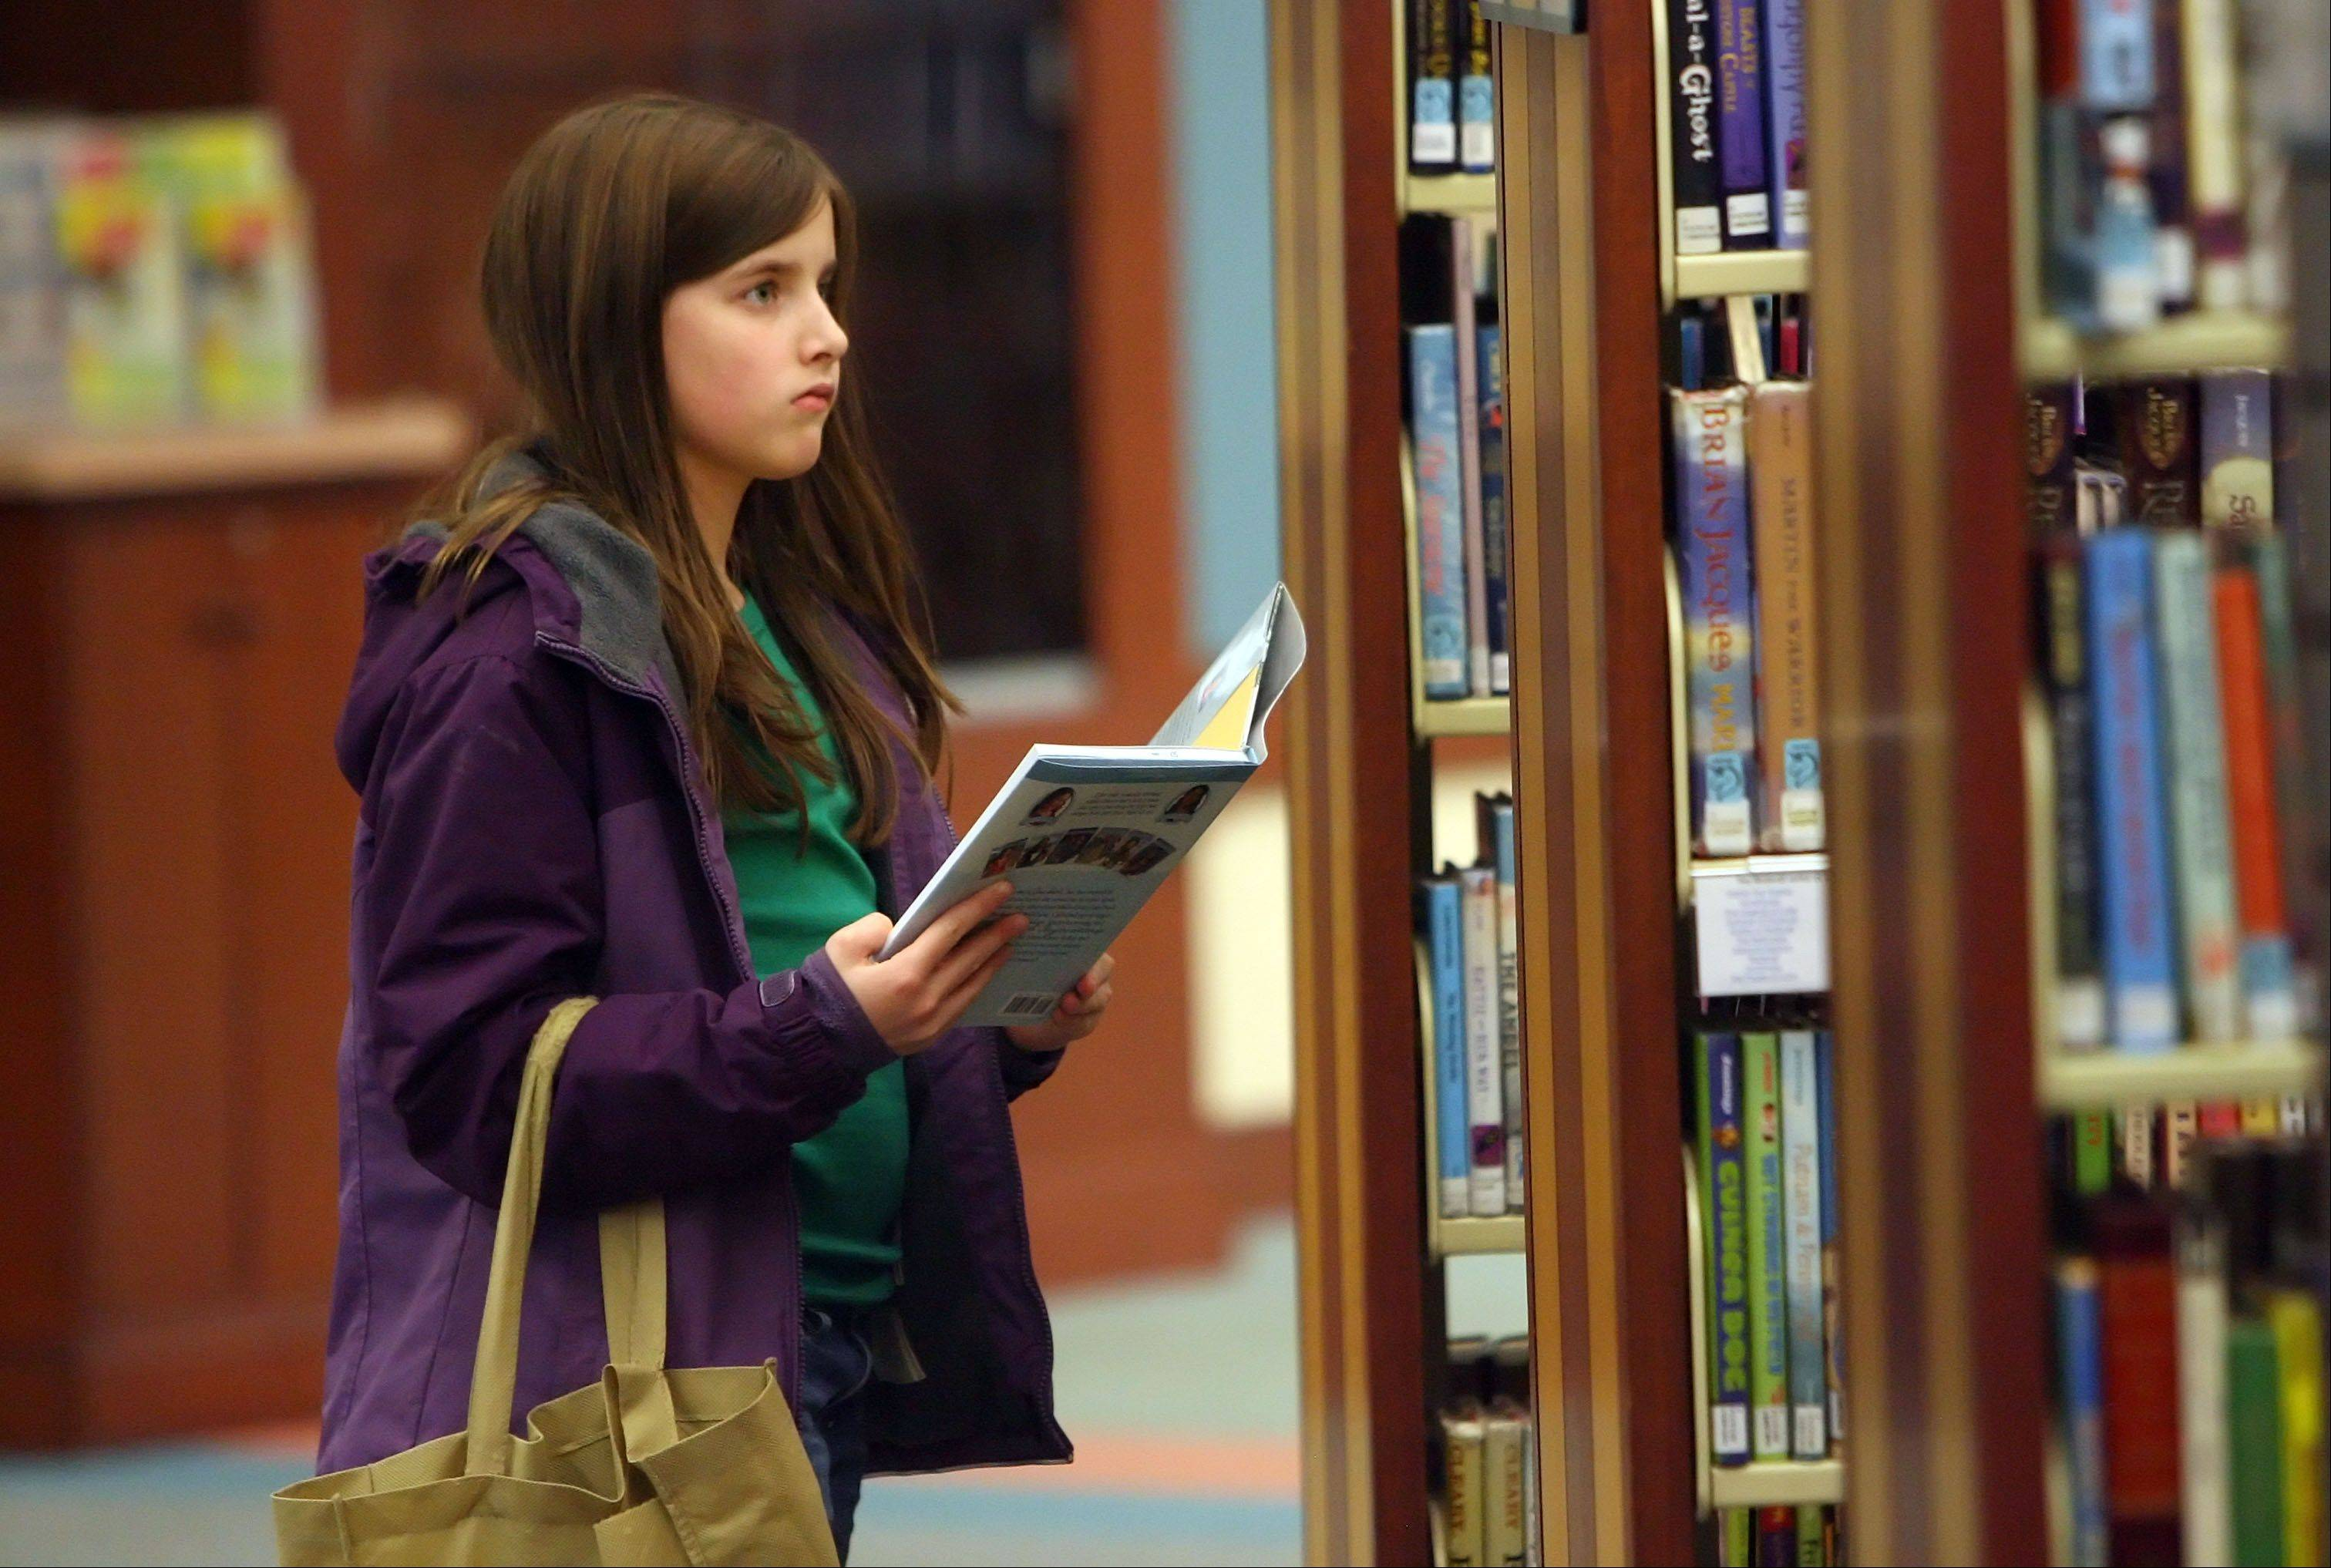 Olivia Caggiano, 9, of Lake Villa looks through books in the children's section at Lake Villa District Library.